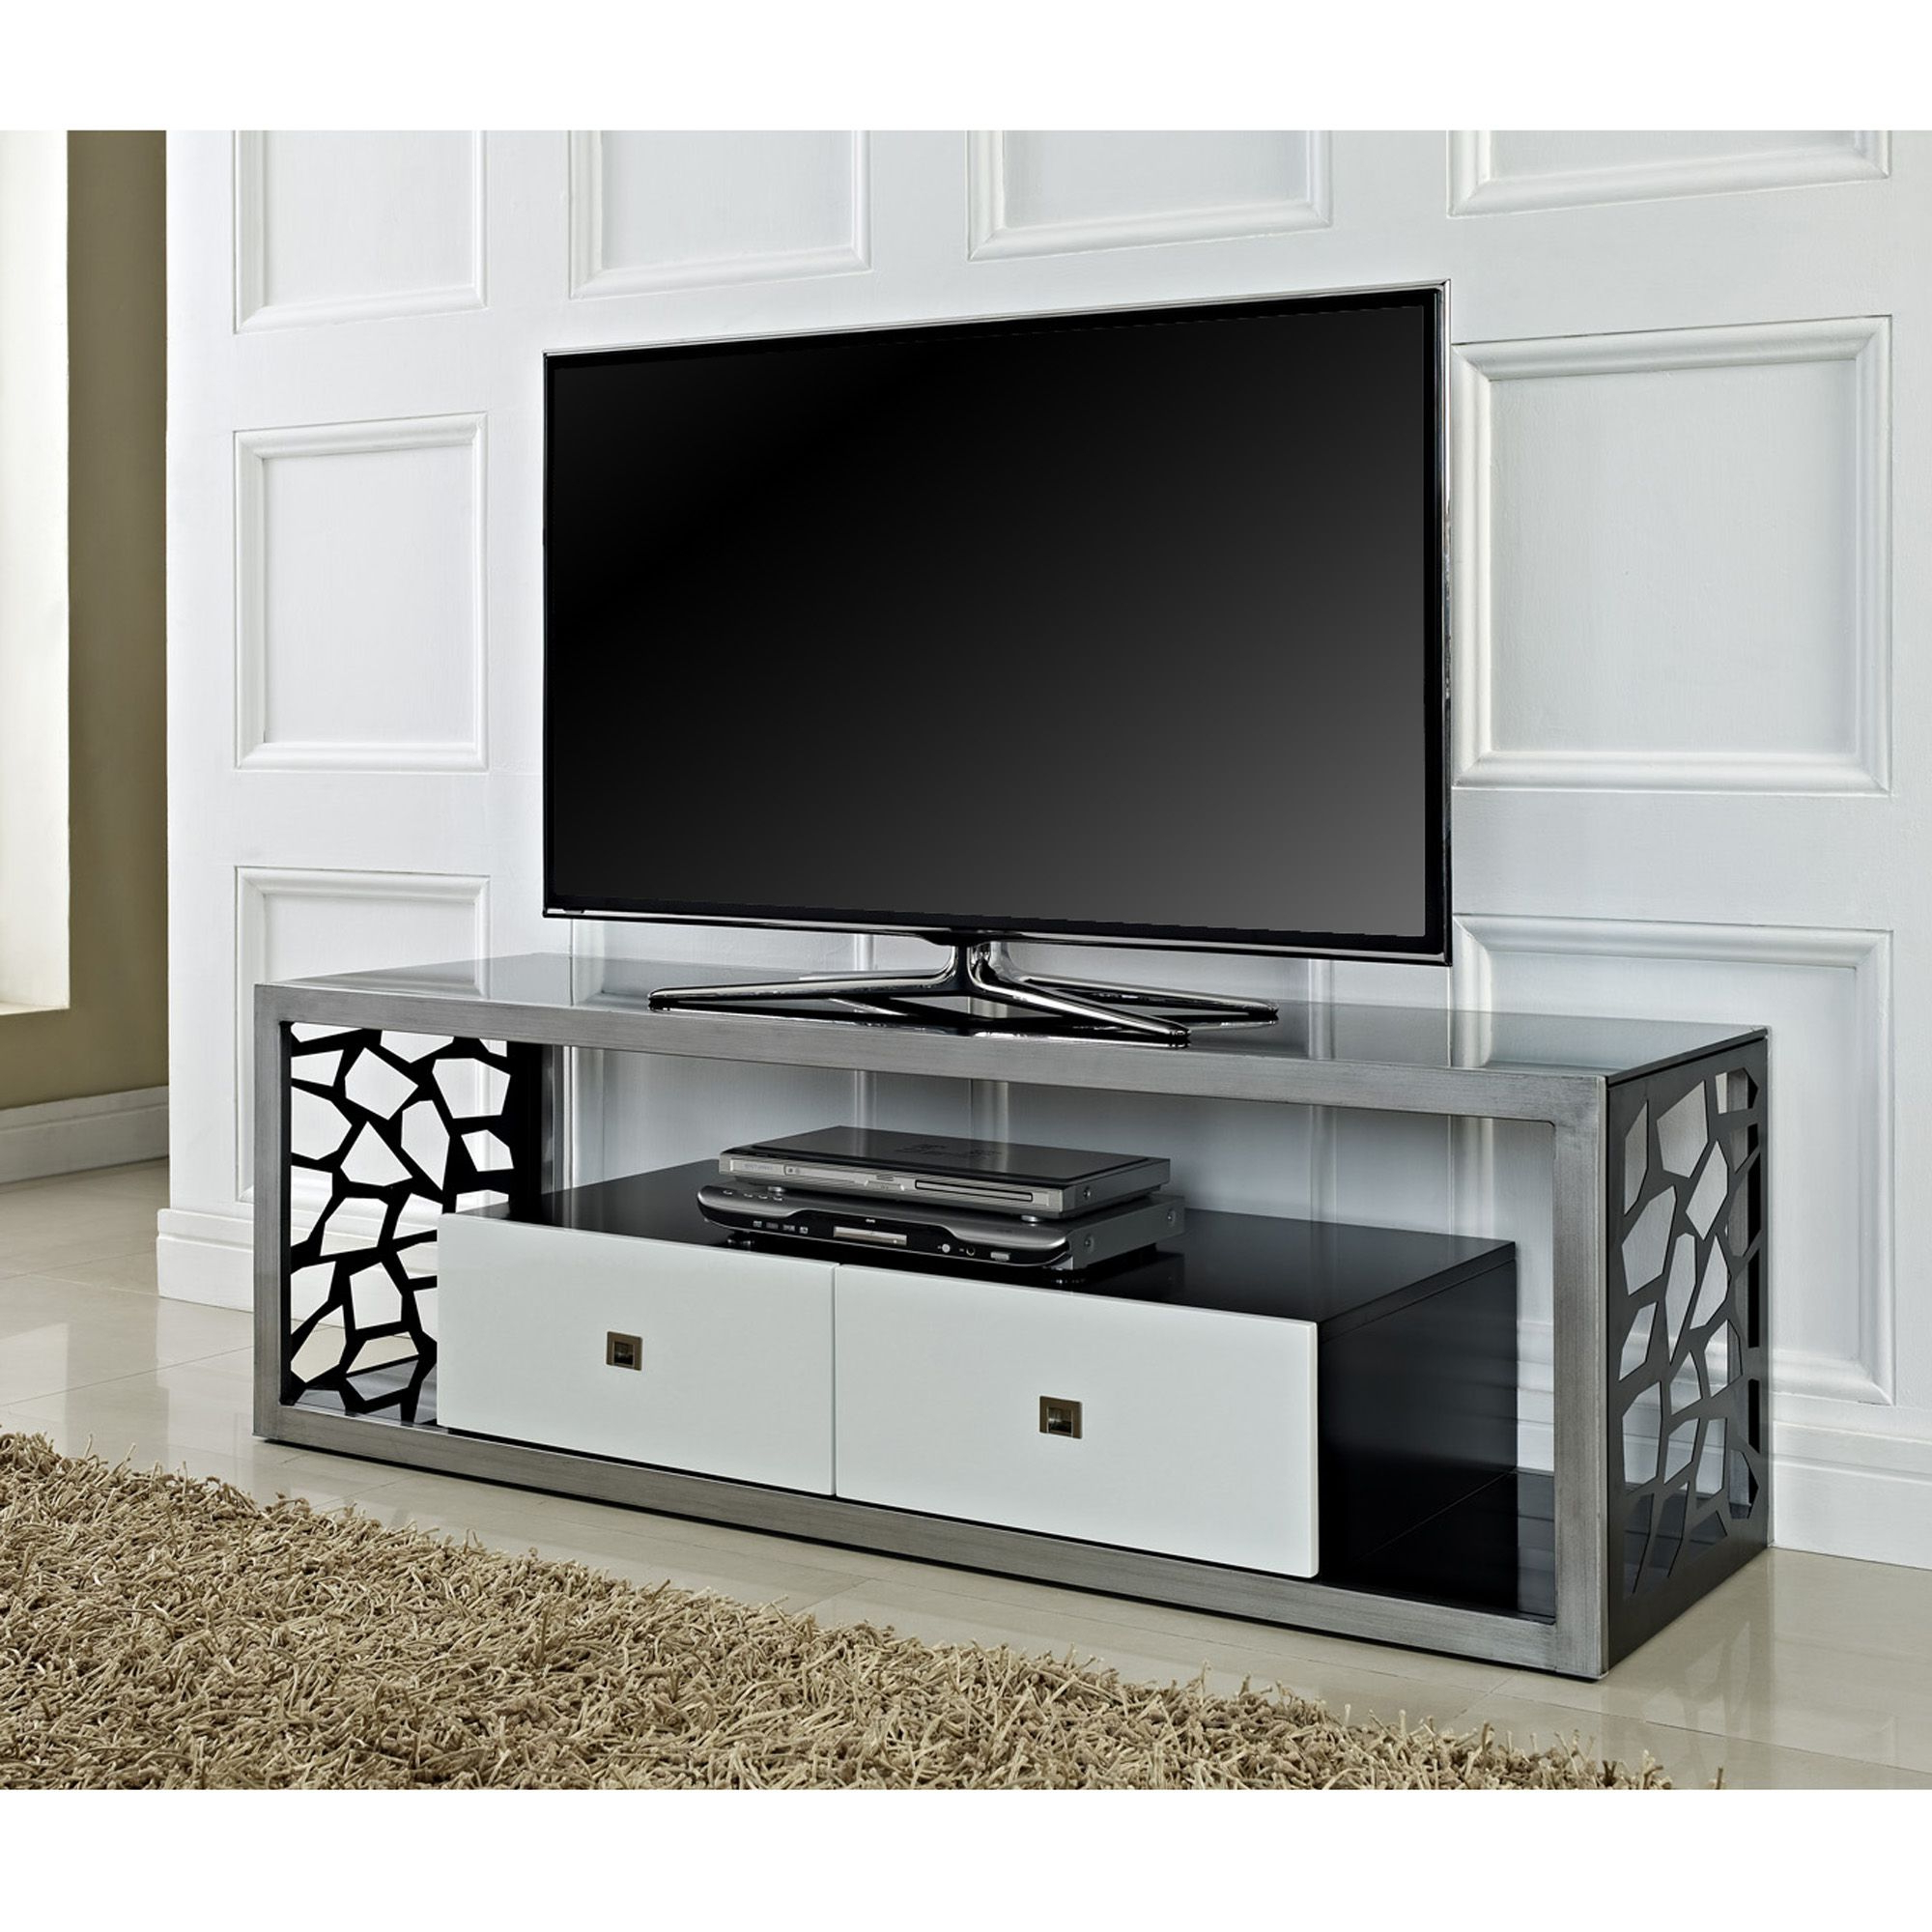 "Beautiful 60"" Mosaic Tv Stand, Brushed Silver Frame With White With Newest Stylish Tv Stands (View 4 of 20)"